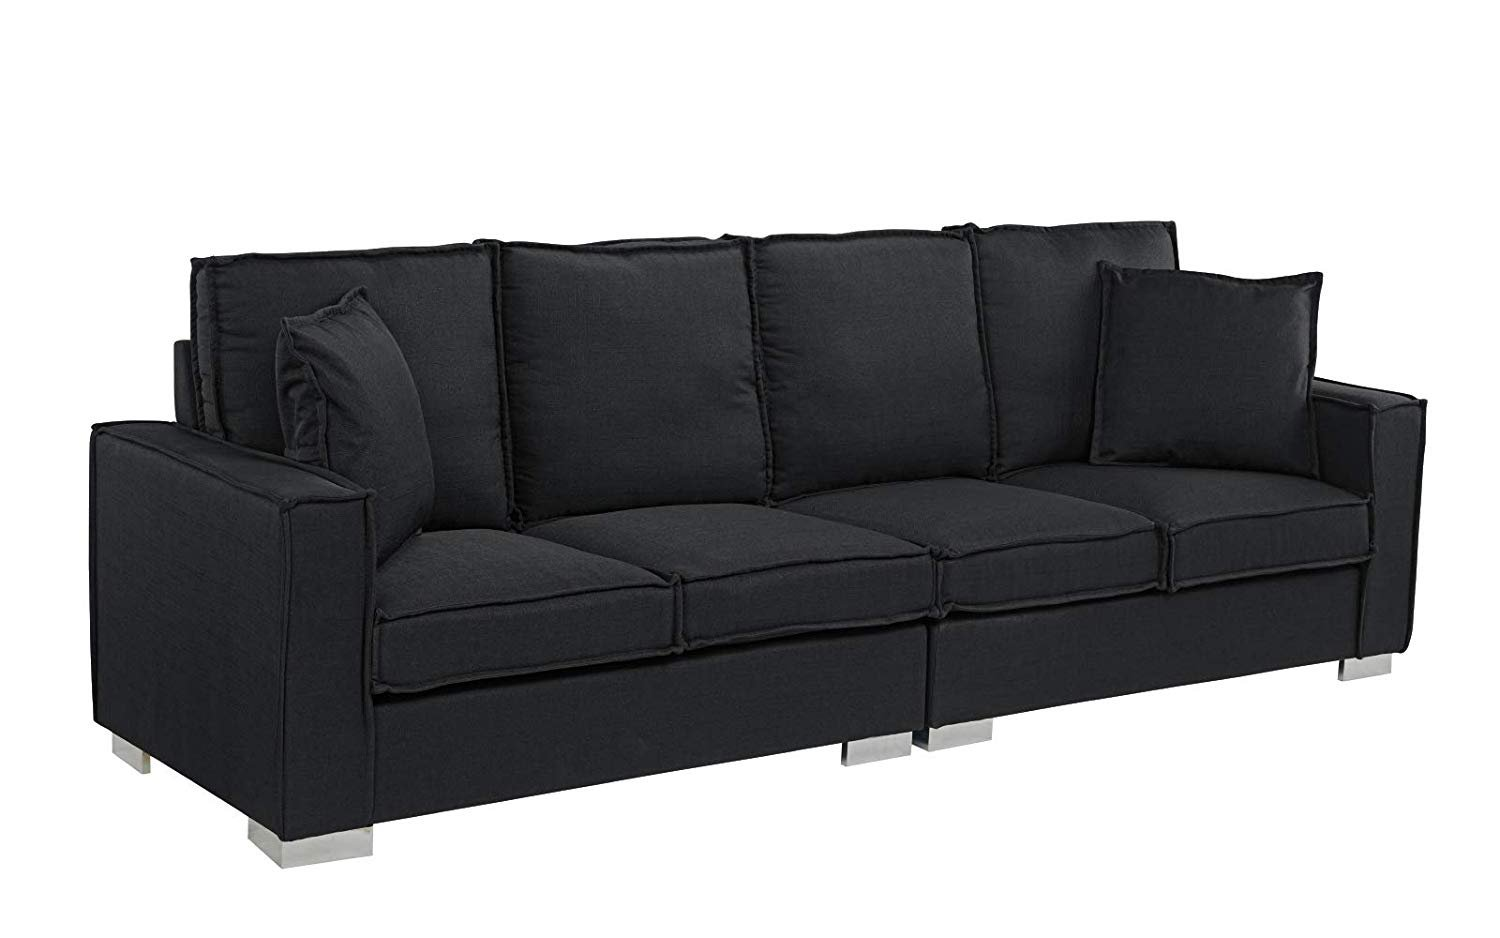 Details about Extra Large Modern Living Room Fabric Sofa, 4 Seat Couch  (Black)